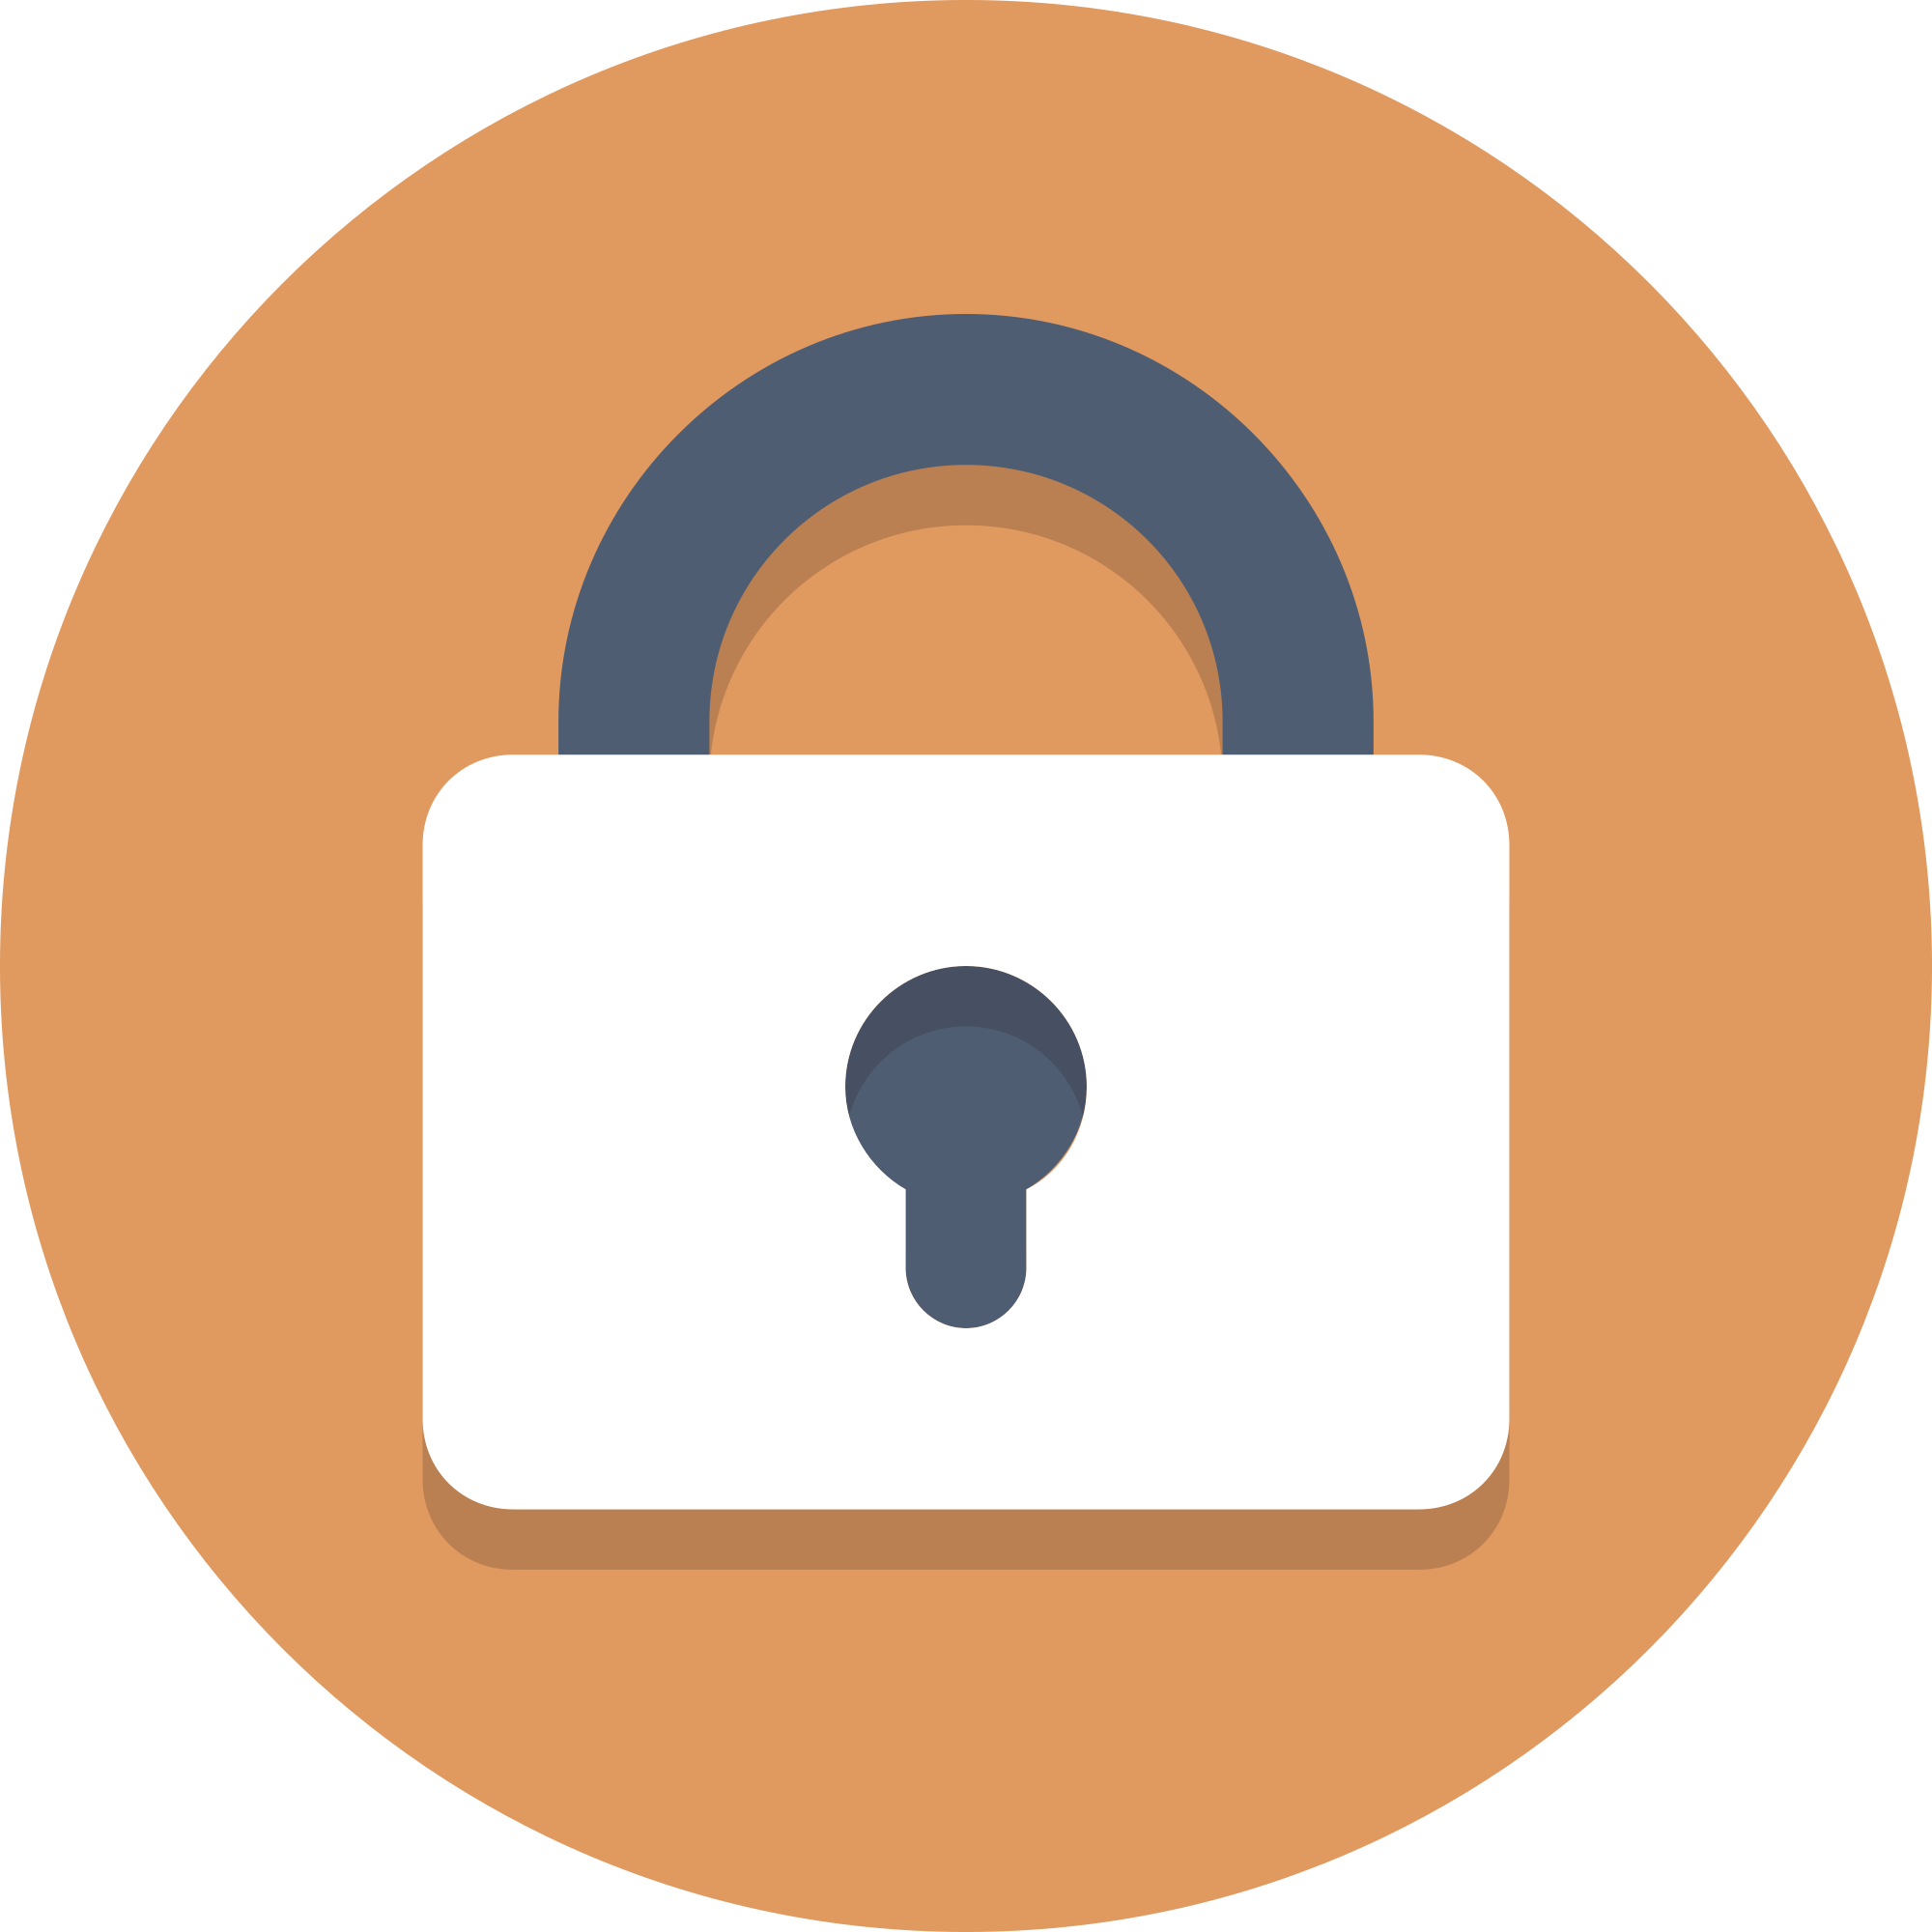 Lock clipart round lock. File circle icons locked